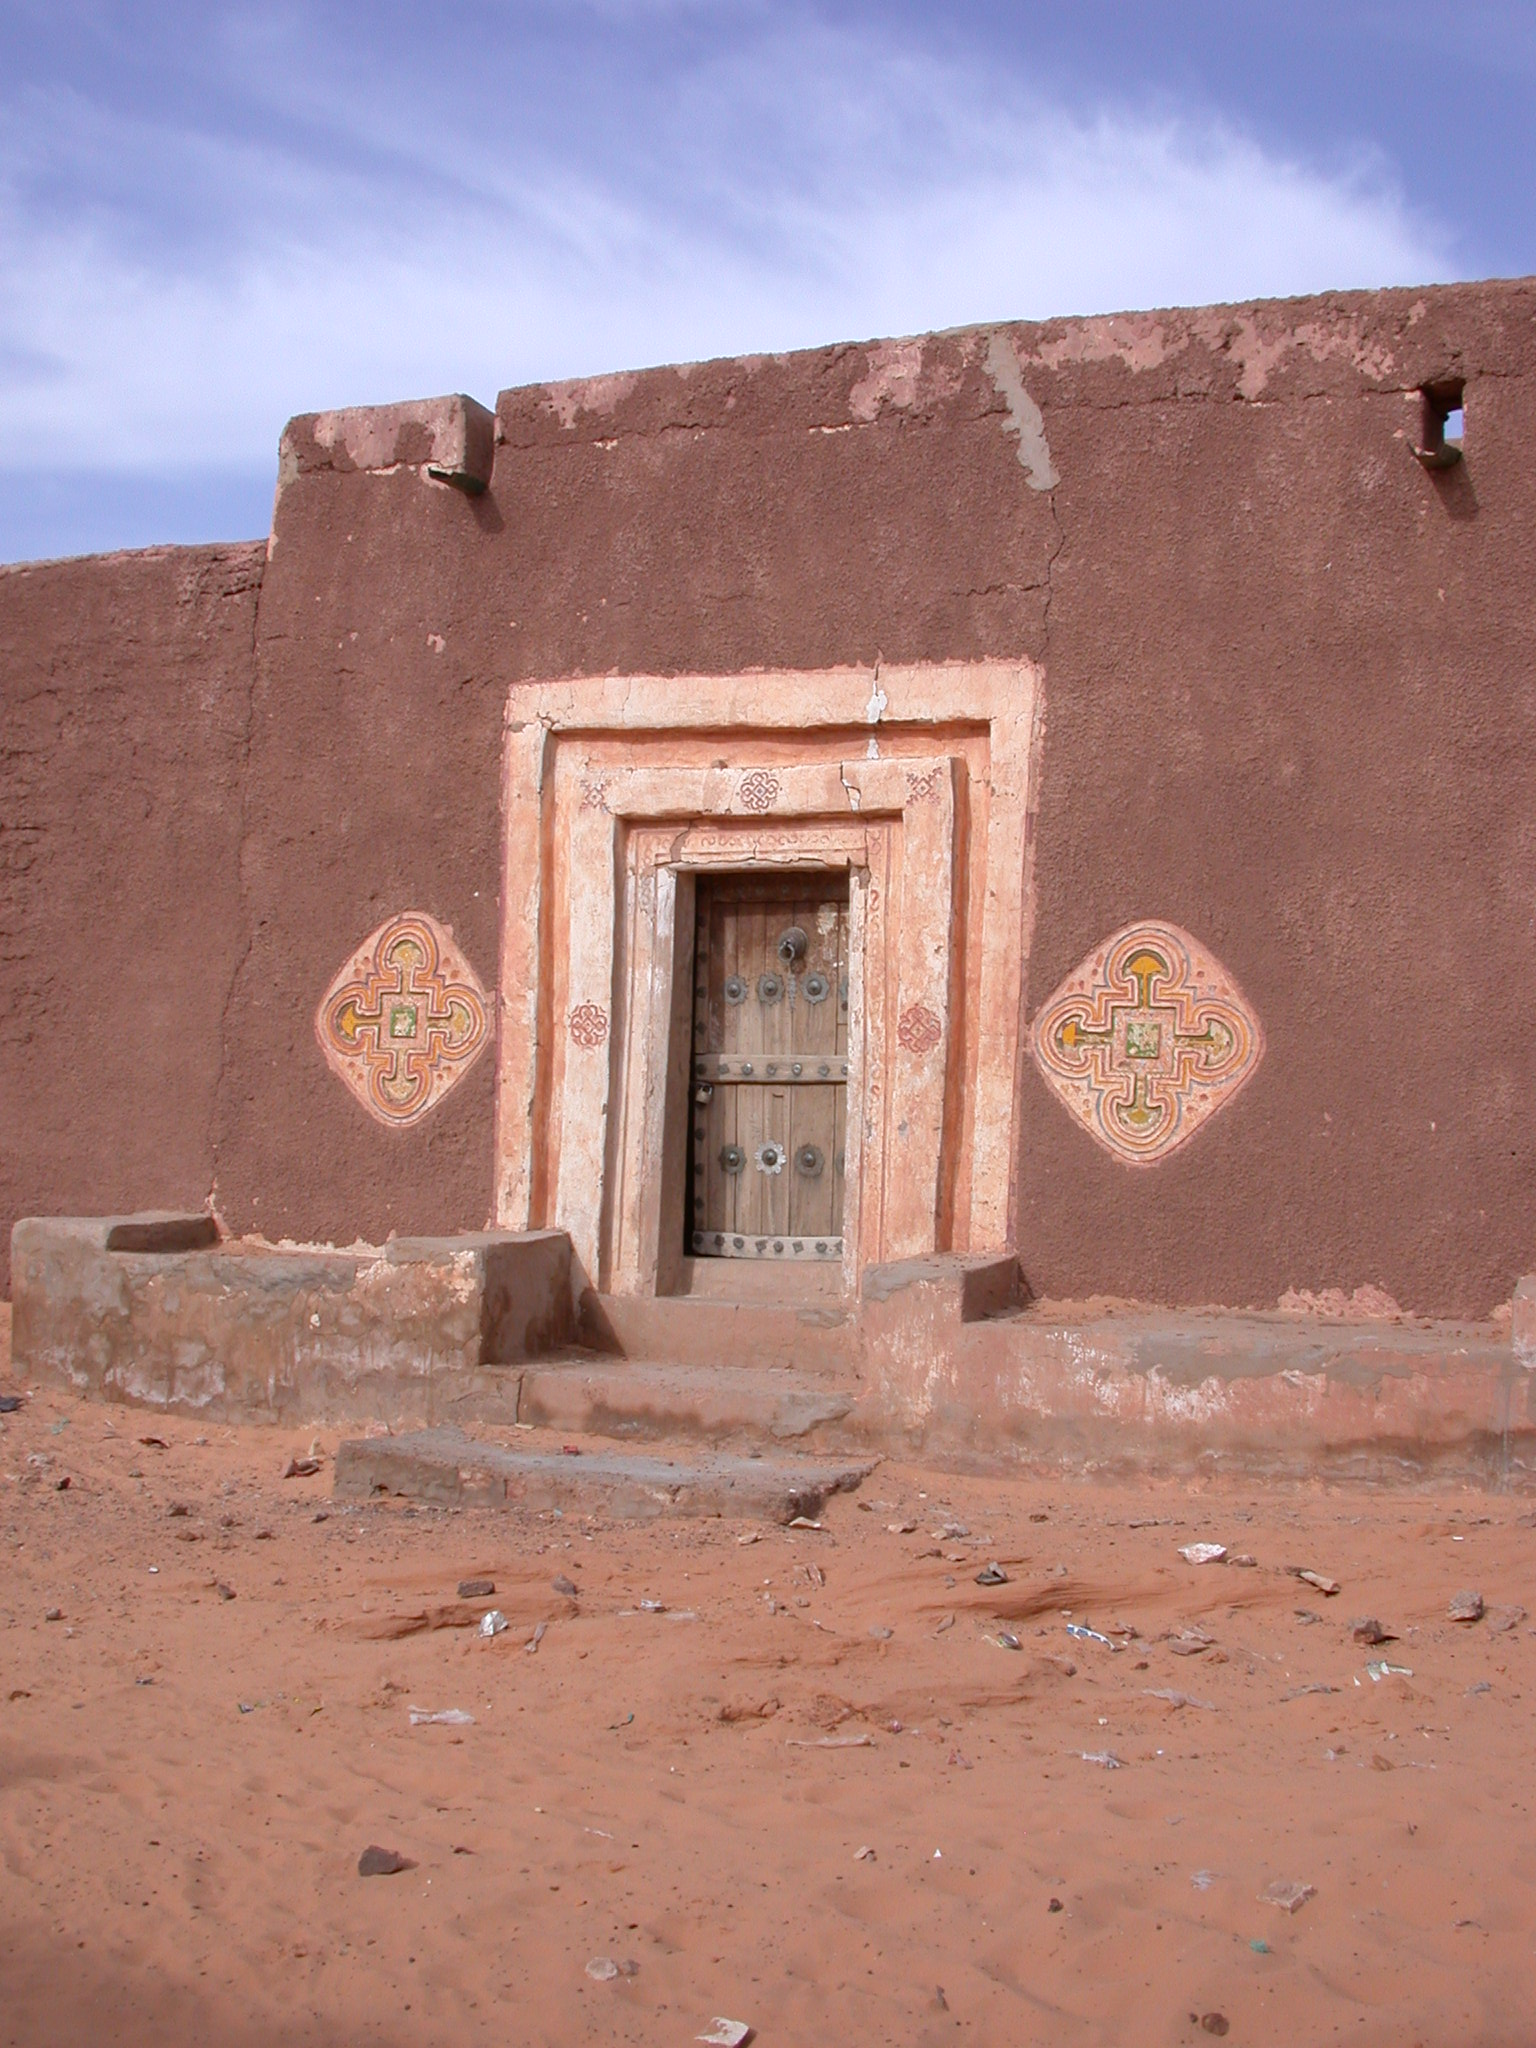 Doorway in Ancient City of Oulata, Mauritania